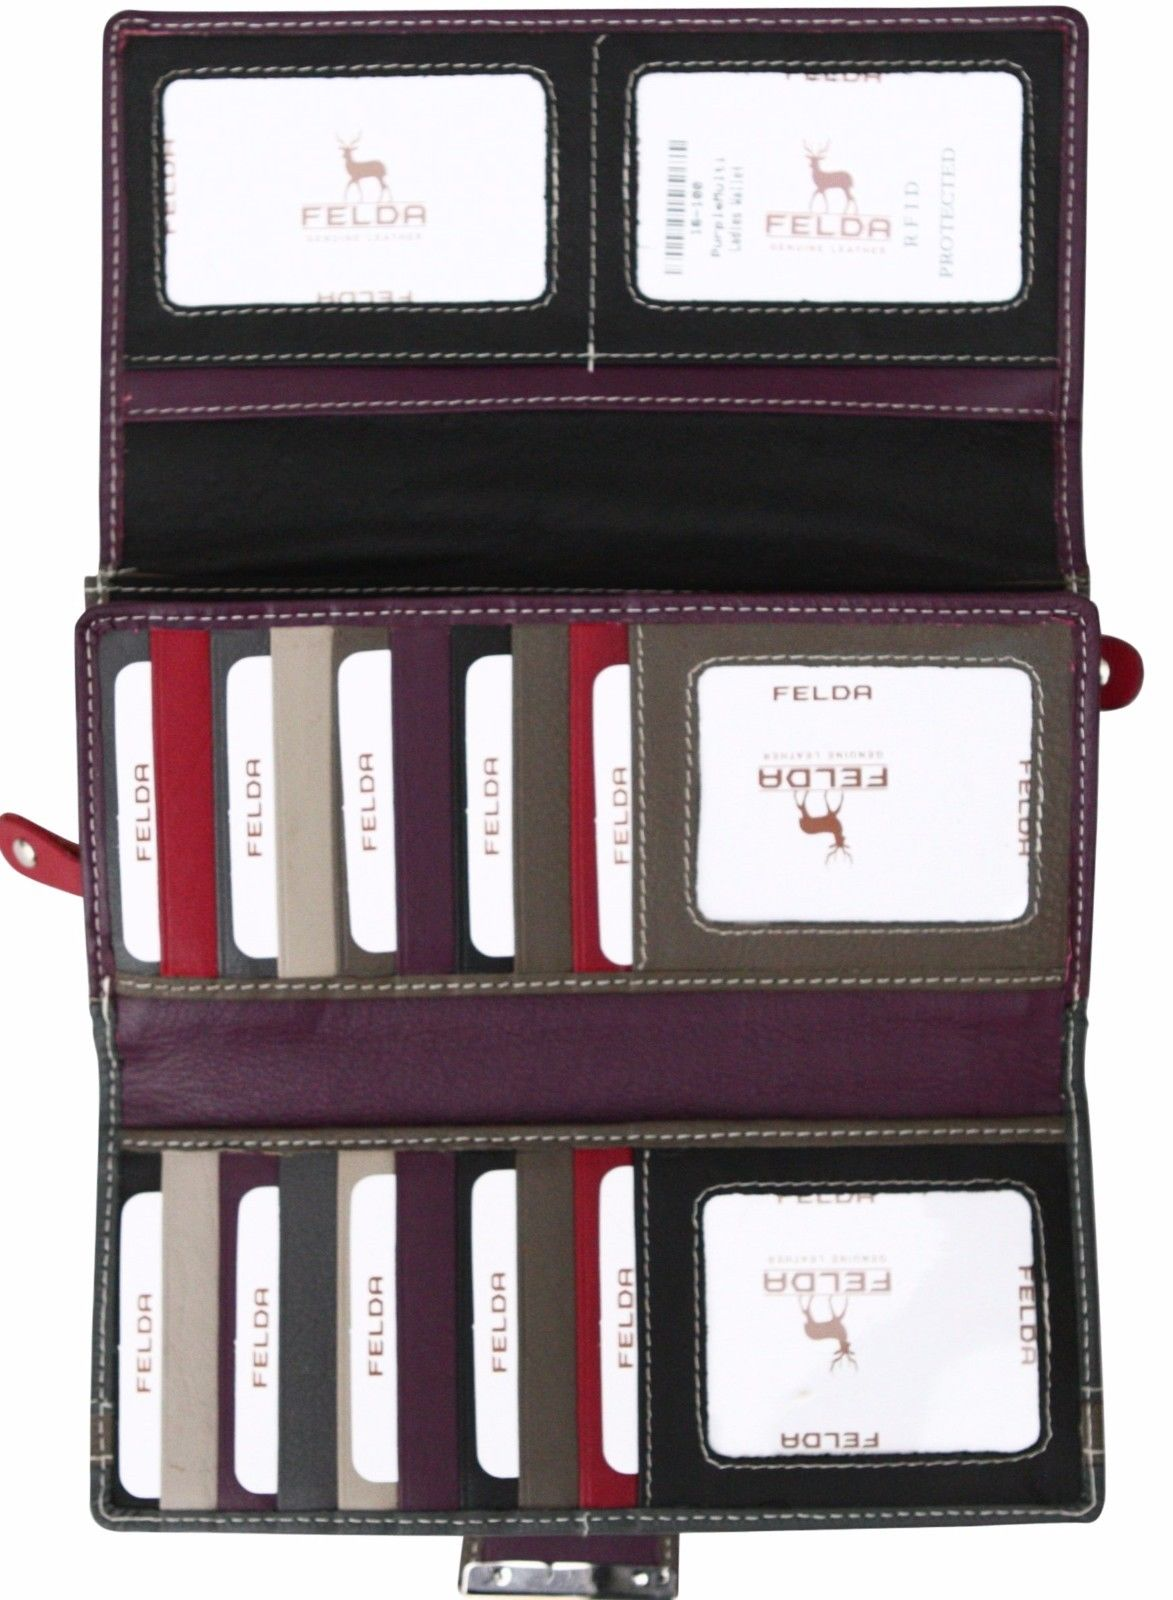 Felda-RFID-Ladies-Leather-Soft-Wallet-Large-Capacity-Purse-Womens-Multi-24-Card miniatuur 51